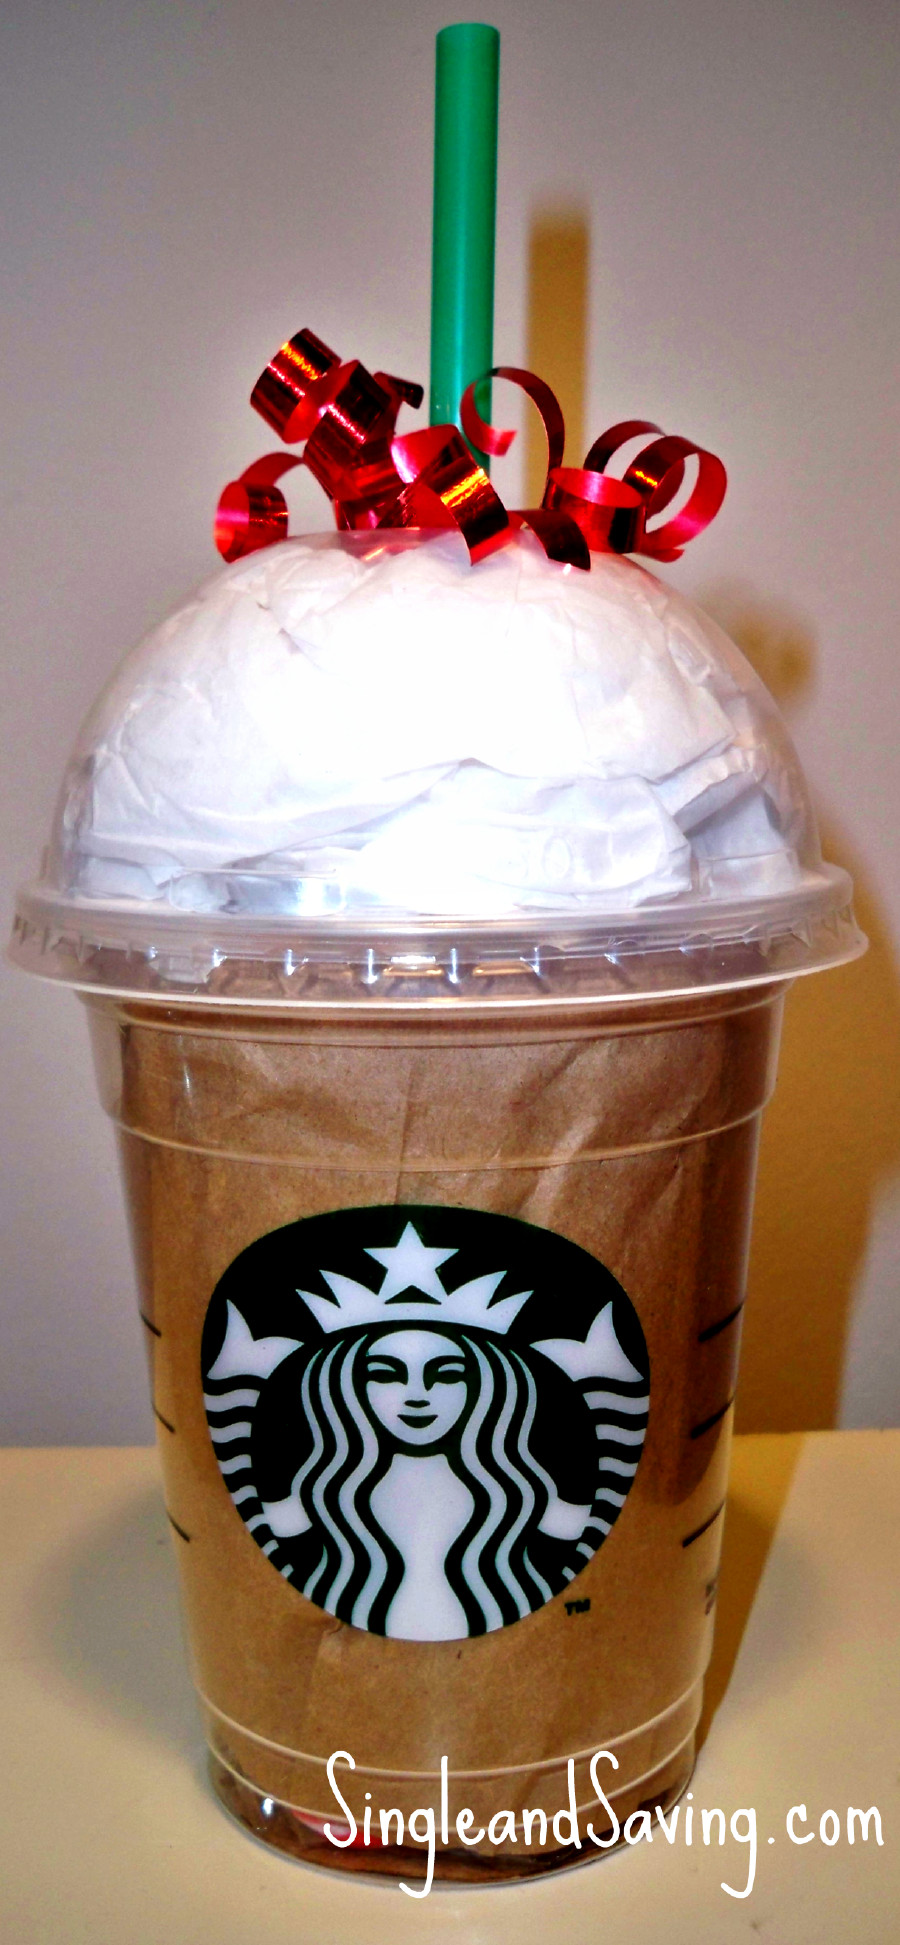 Best ideas about Gift Card Wrapping Ideas . Save or Pin 15 Creative Ways to Wrap that Gift Card Keep them Warm Now.